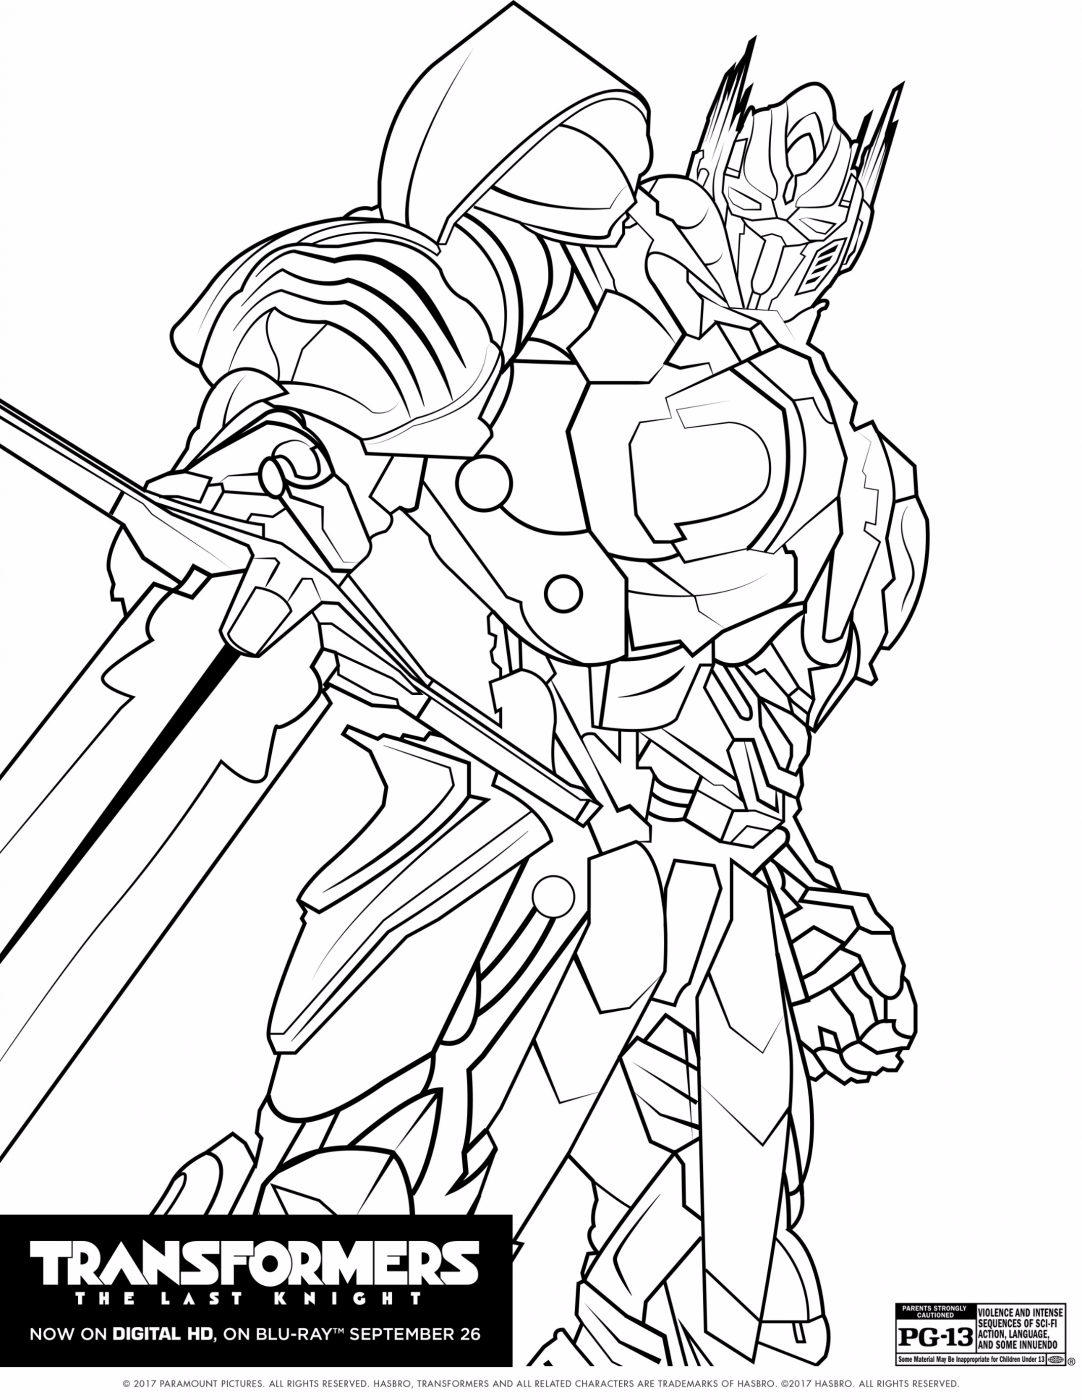 Transformers The Last Knight Coloring Sheet Transformers Coloring Pages Shark Coloring Pages Superhero Coloring Pages